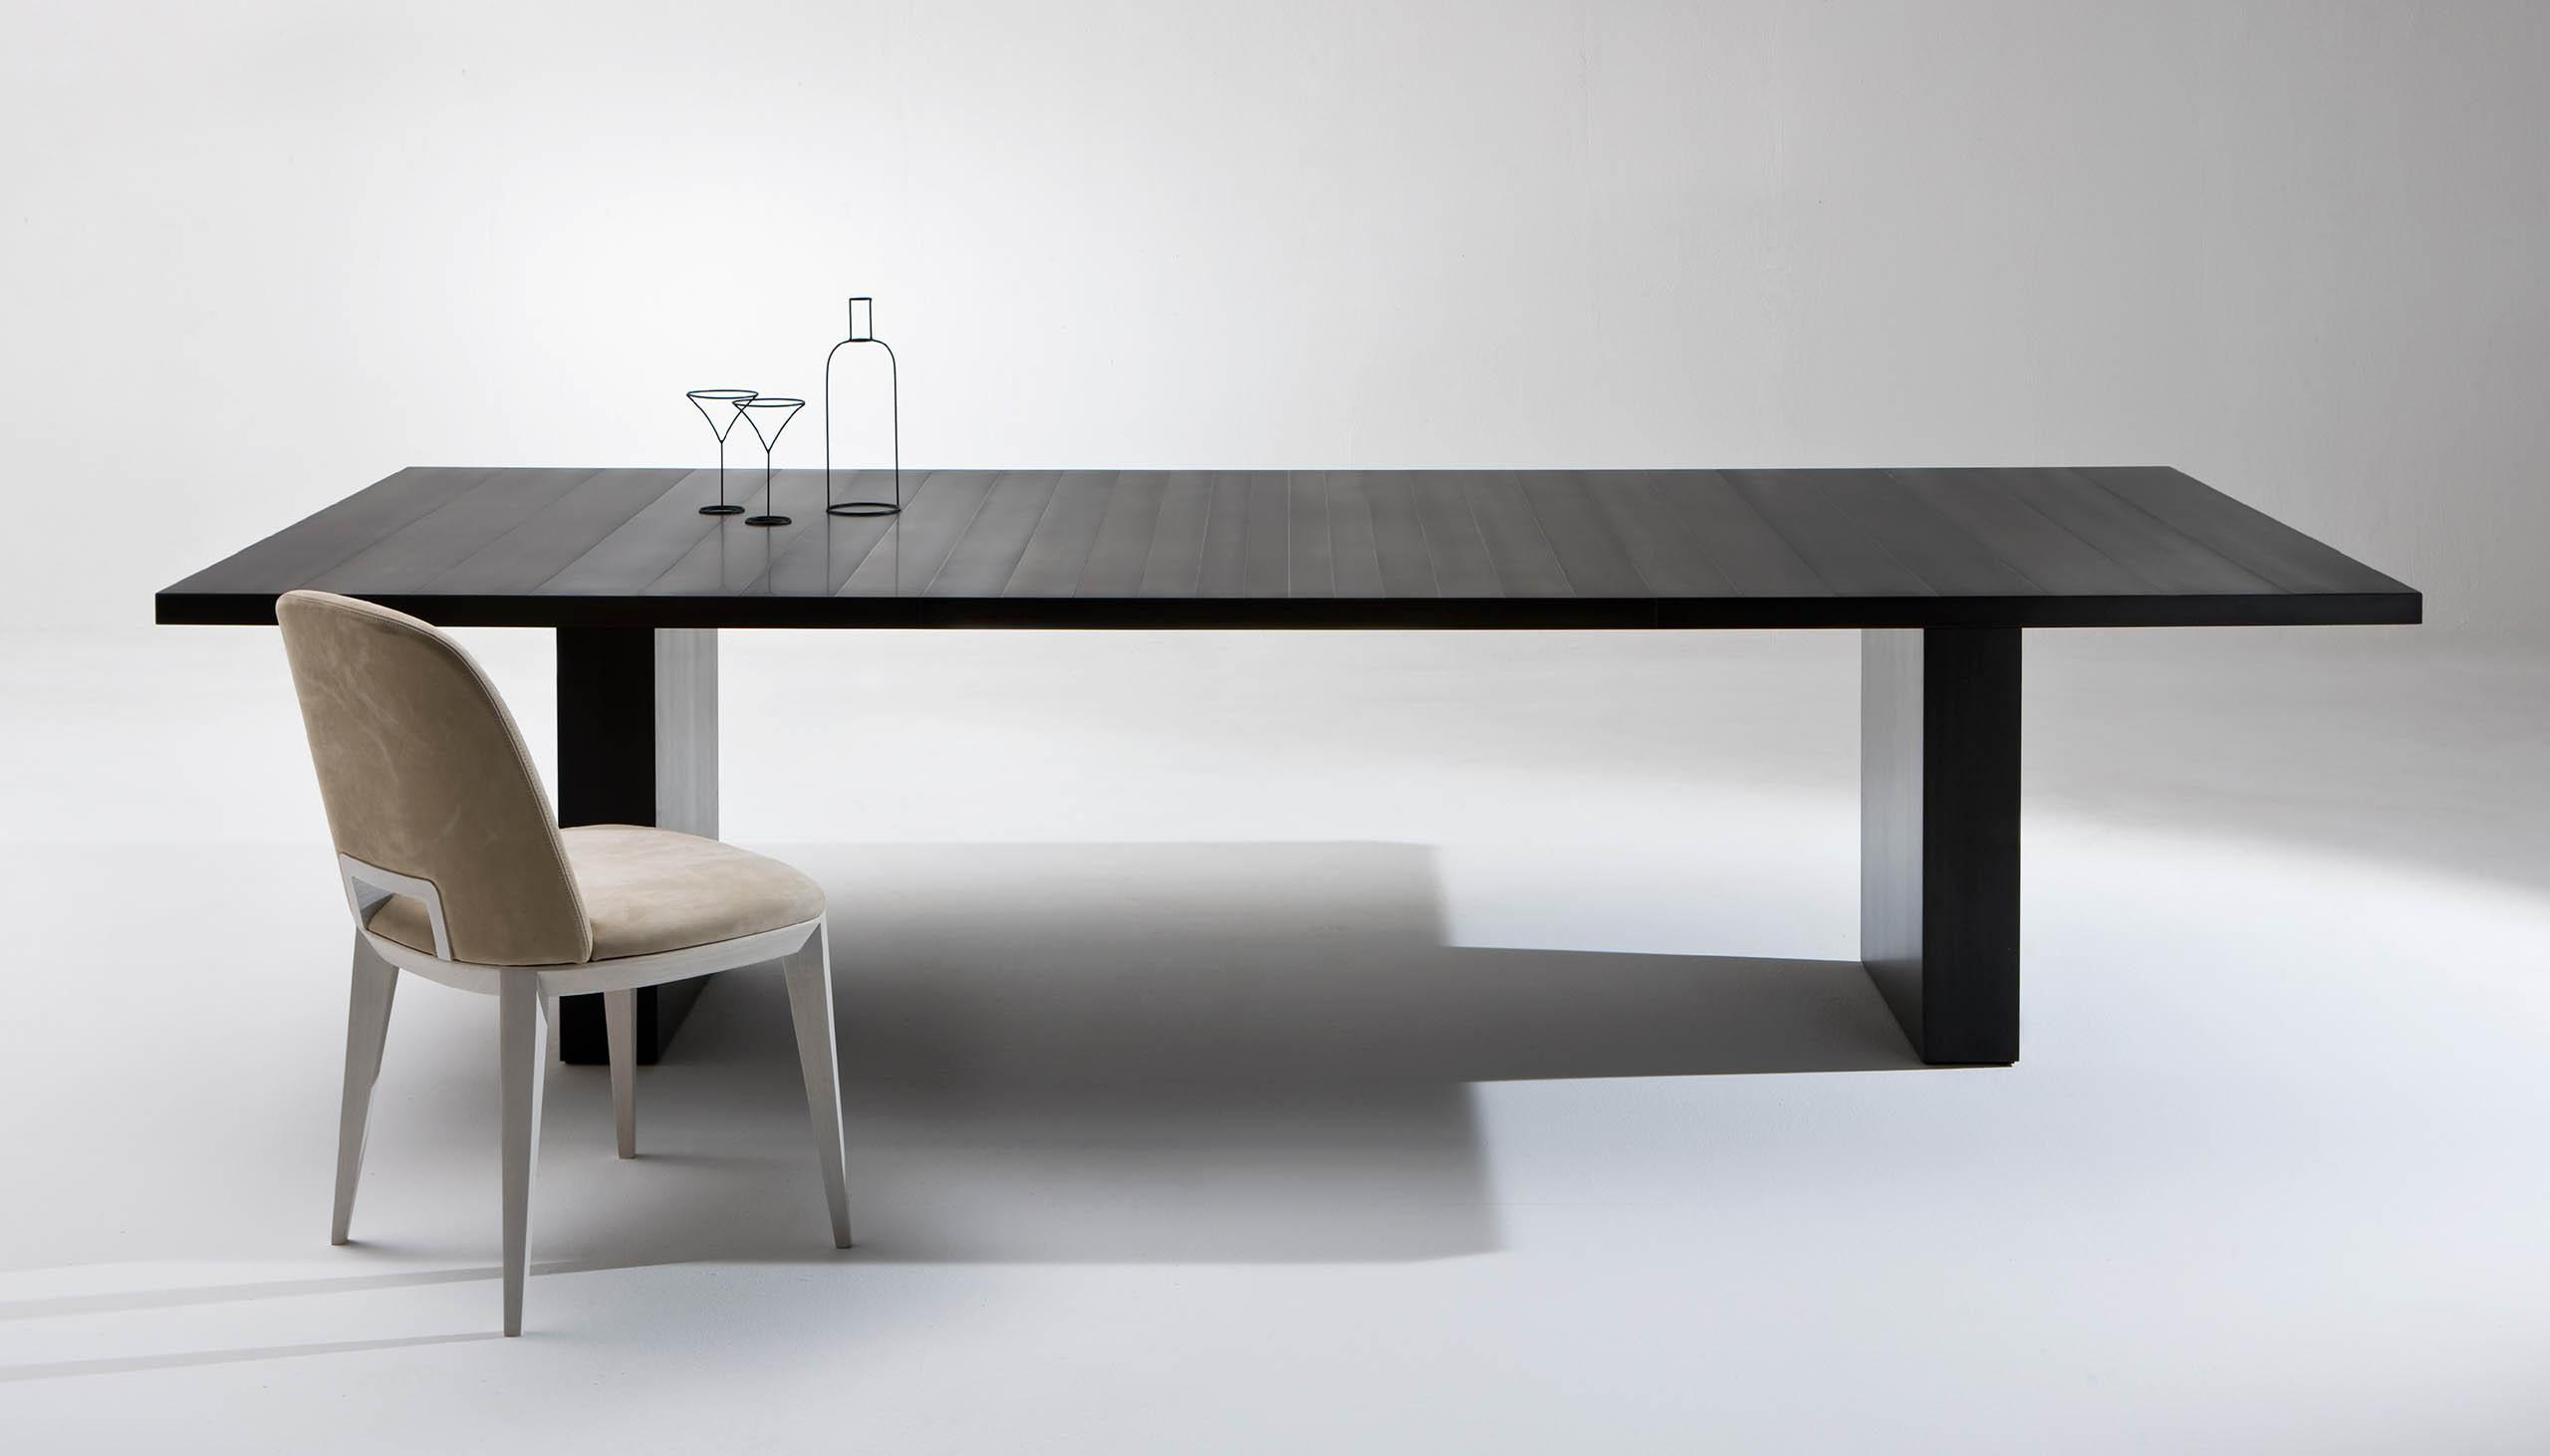 Black metal clad table surface design for luxury minimal interiors